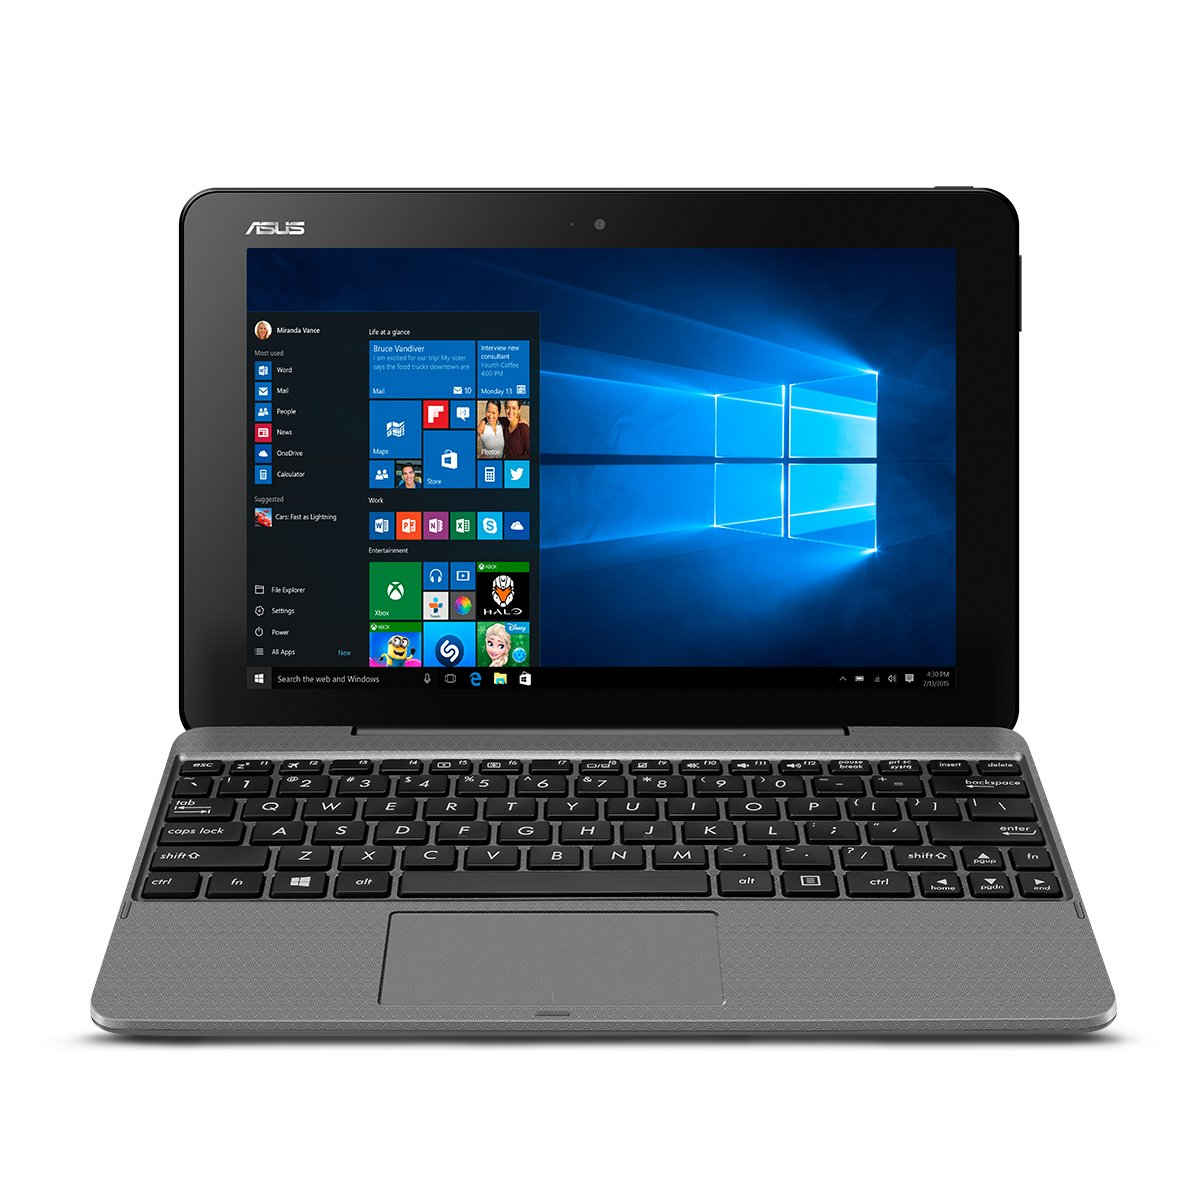 ASUS B23E NOTEBOOK AZUREWAVE BLUETOOTH WINDOWS 8 X64 DRIVER DOWNLOAD